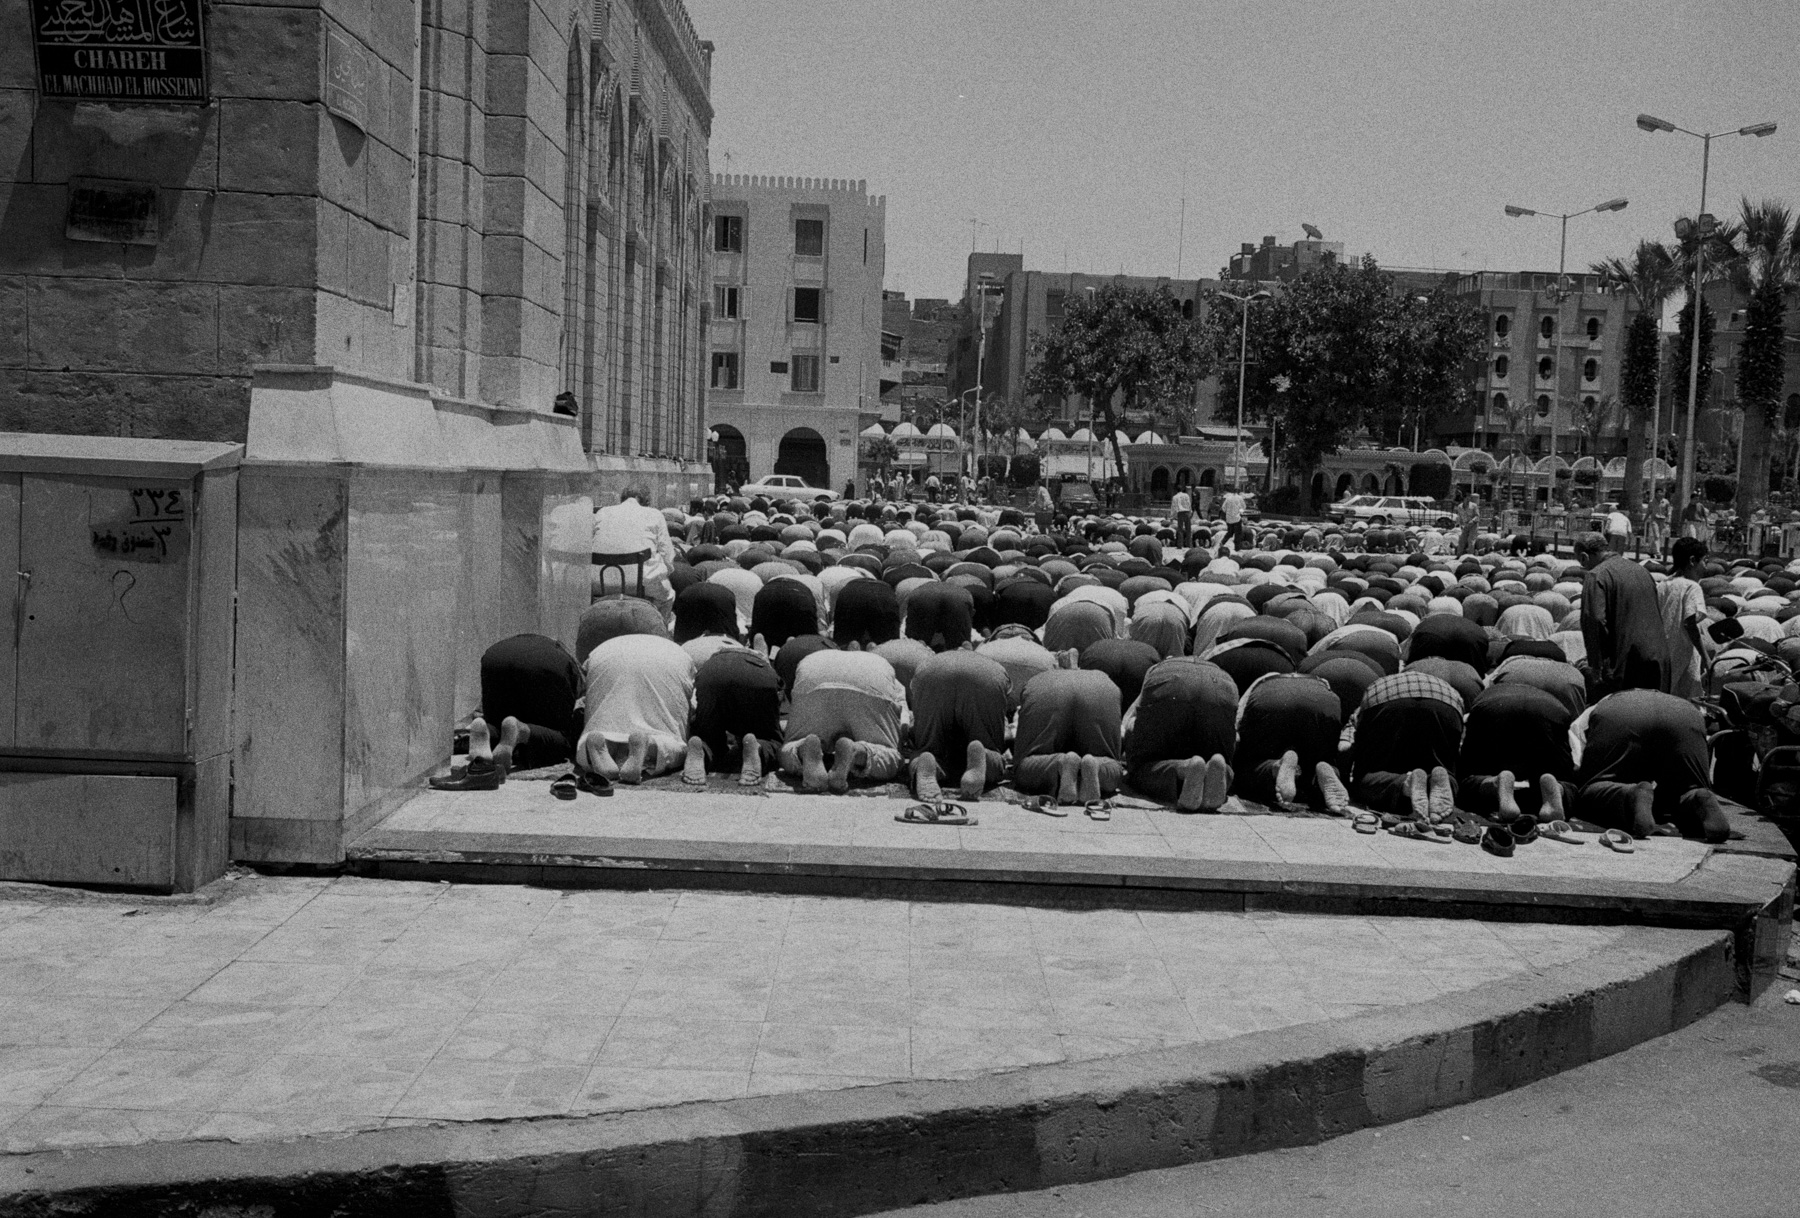 Friday Noon Prayer outside Al Ashar Mosque